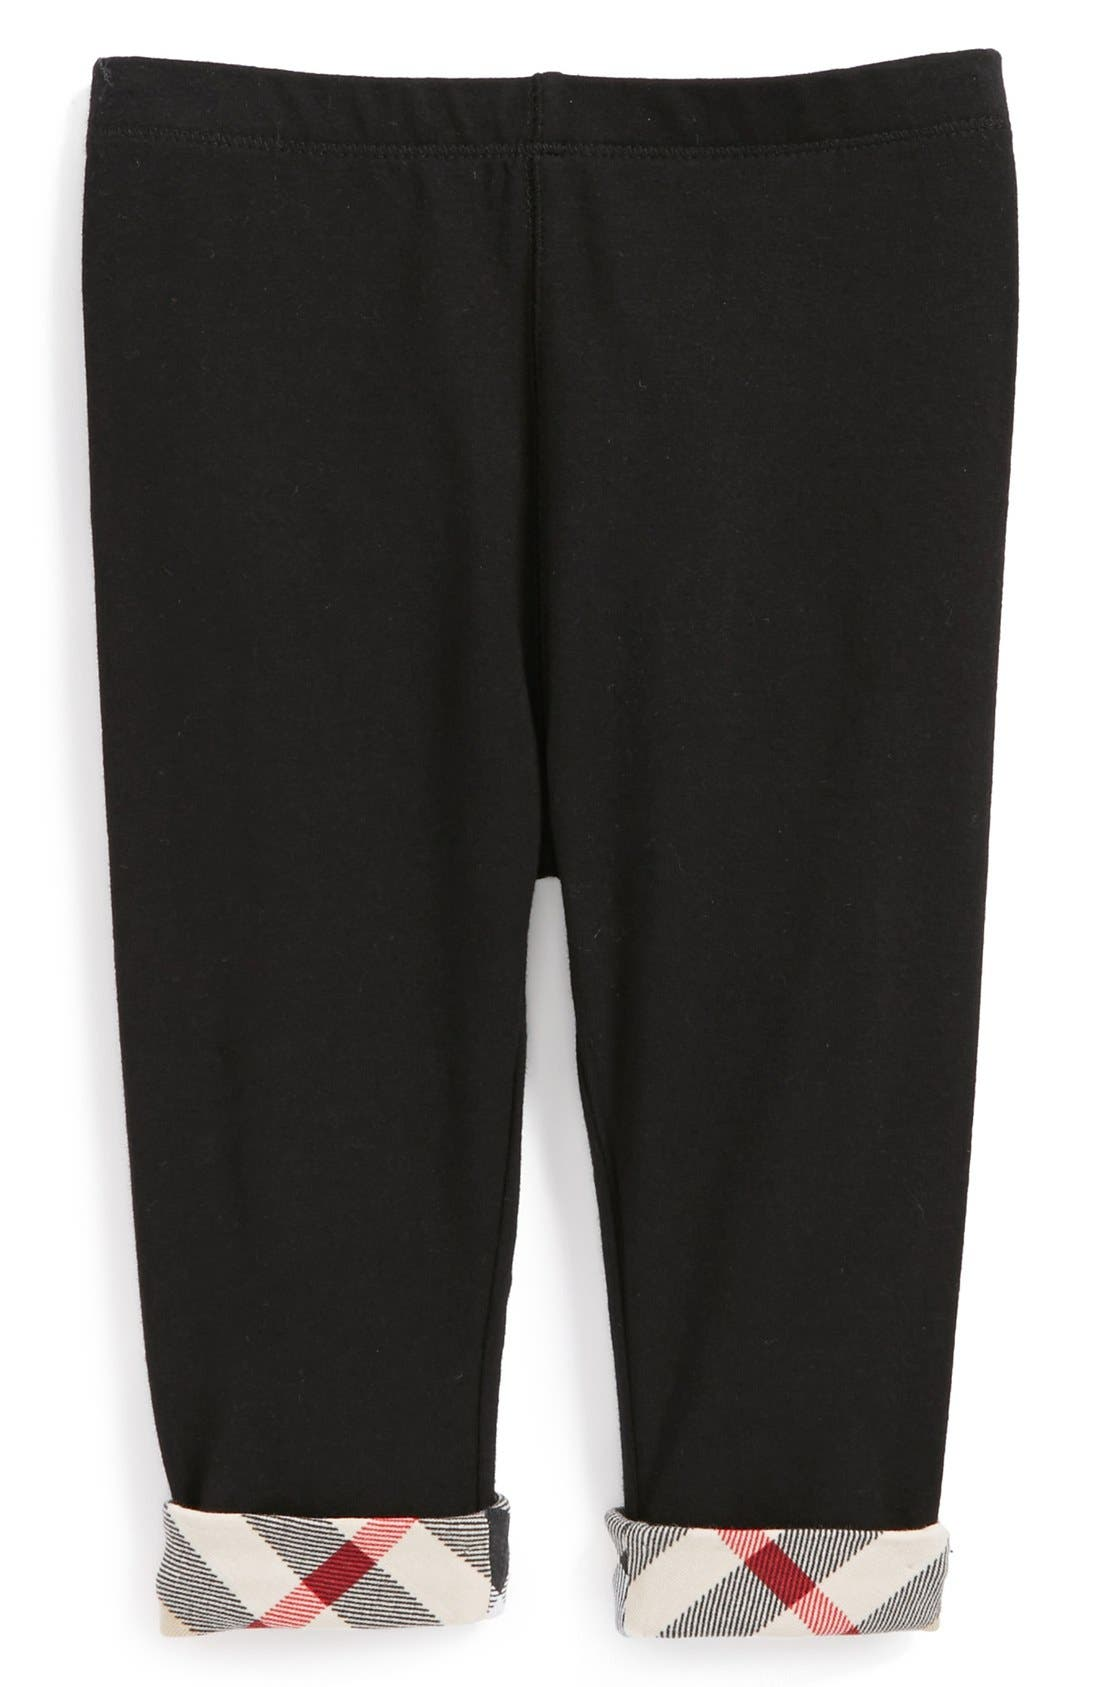 BURBERRY,                             Check Cuff Pants,                             Alternate thumbnail 6, color,                             001